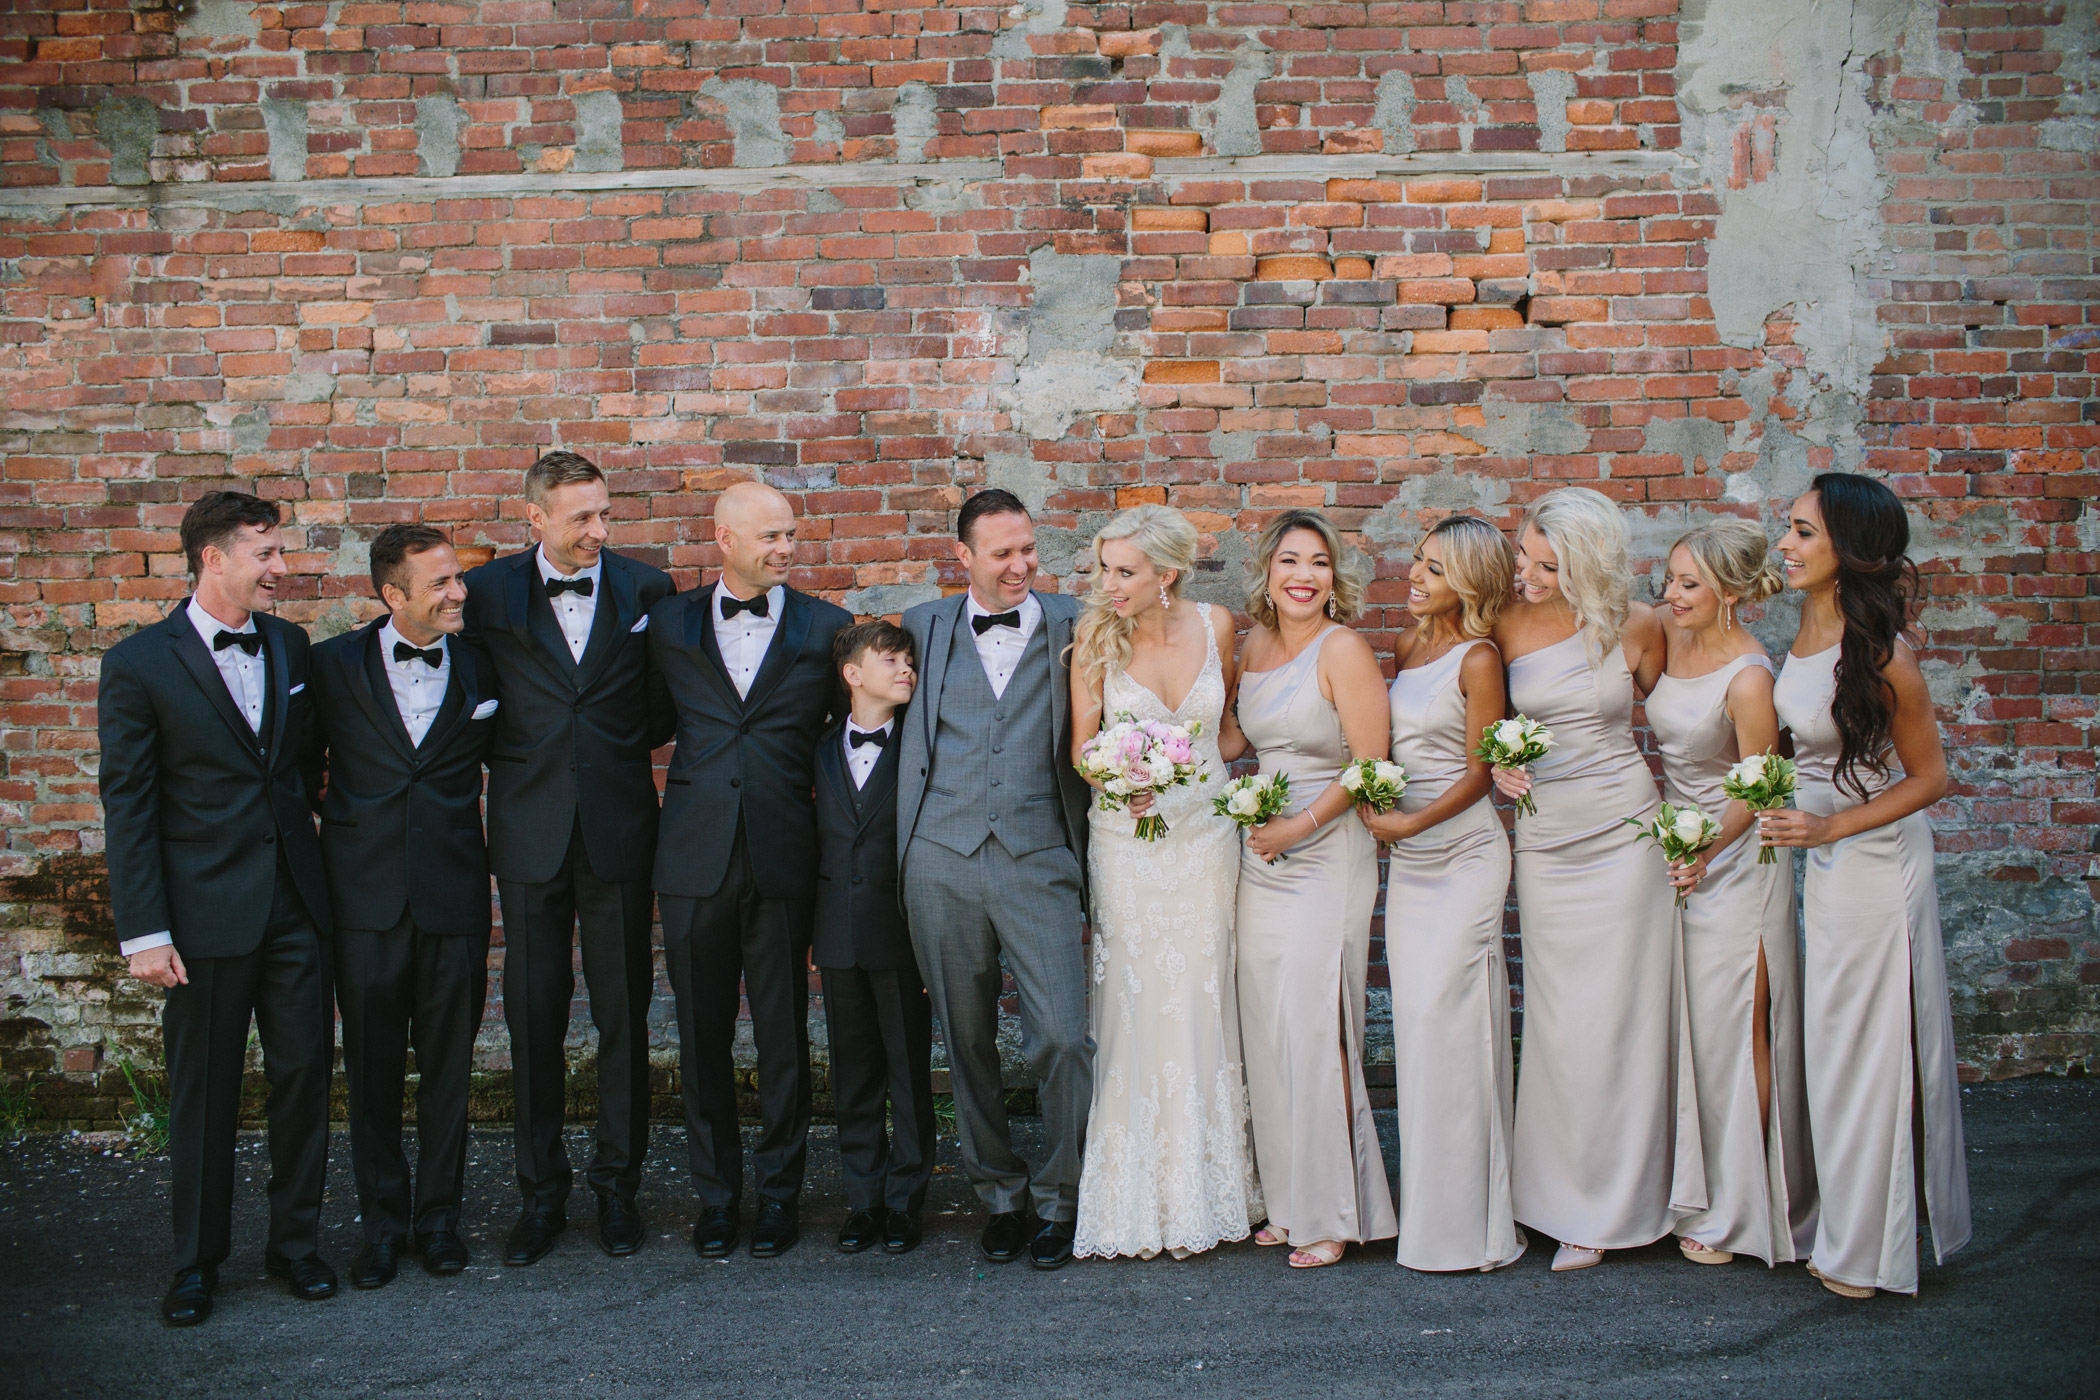 Vancouver Wedding Party in front of brick wall